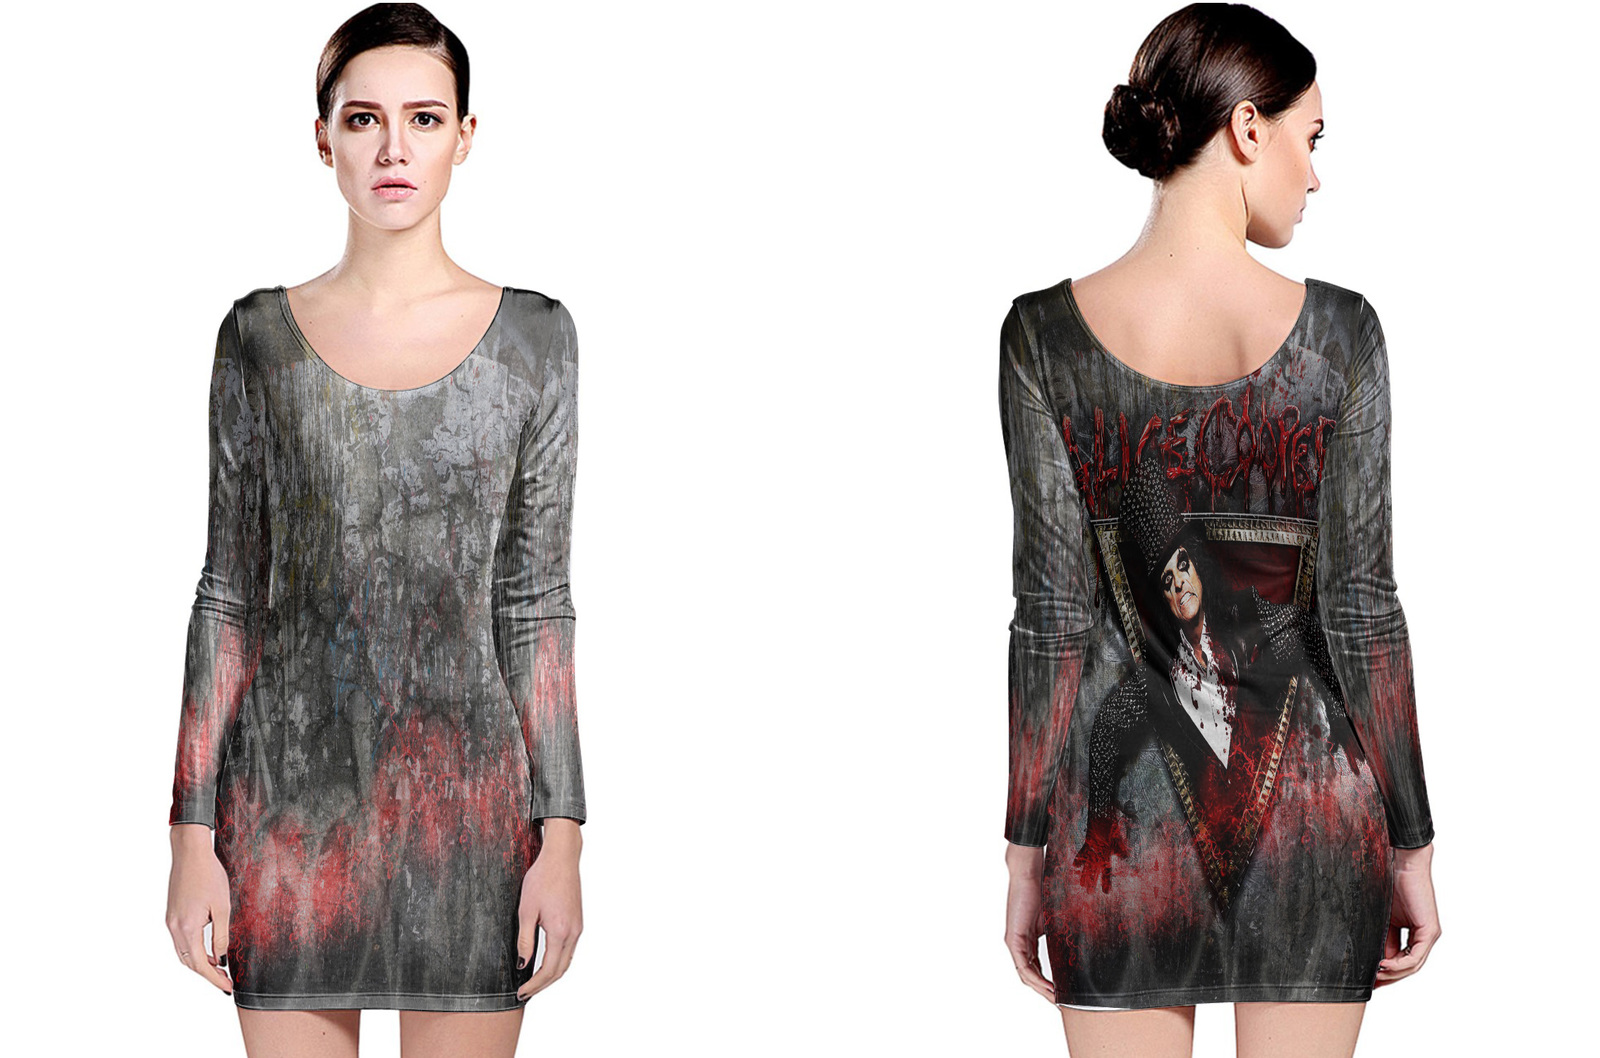 Primary image for Alice Cooper Collection #2 Women's Long Sleeve Bodycon Dress